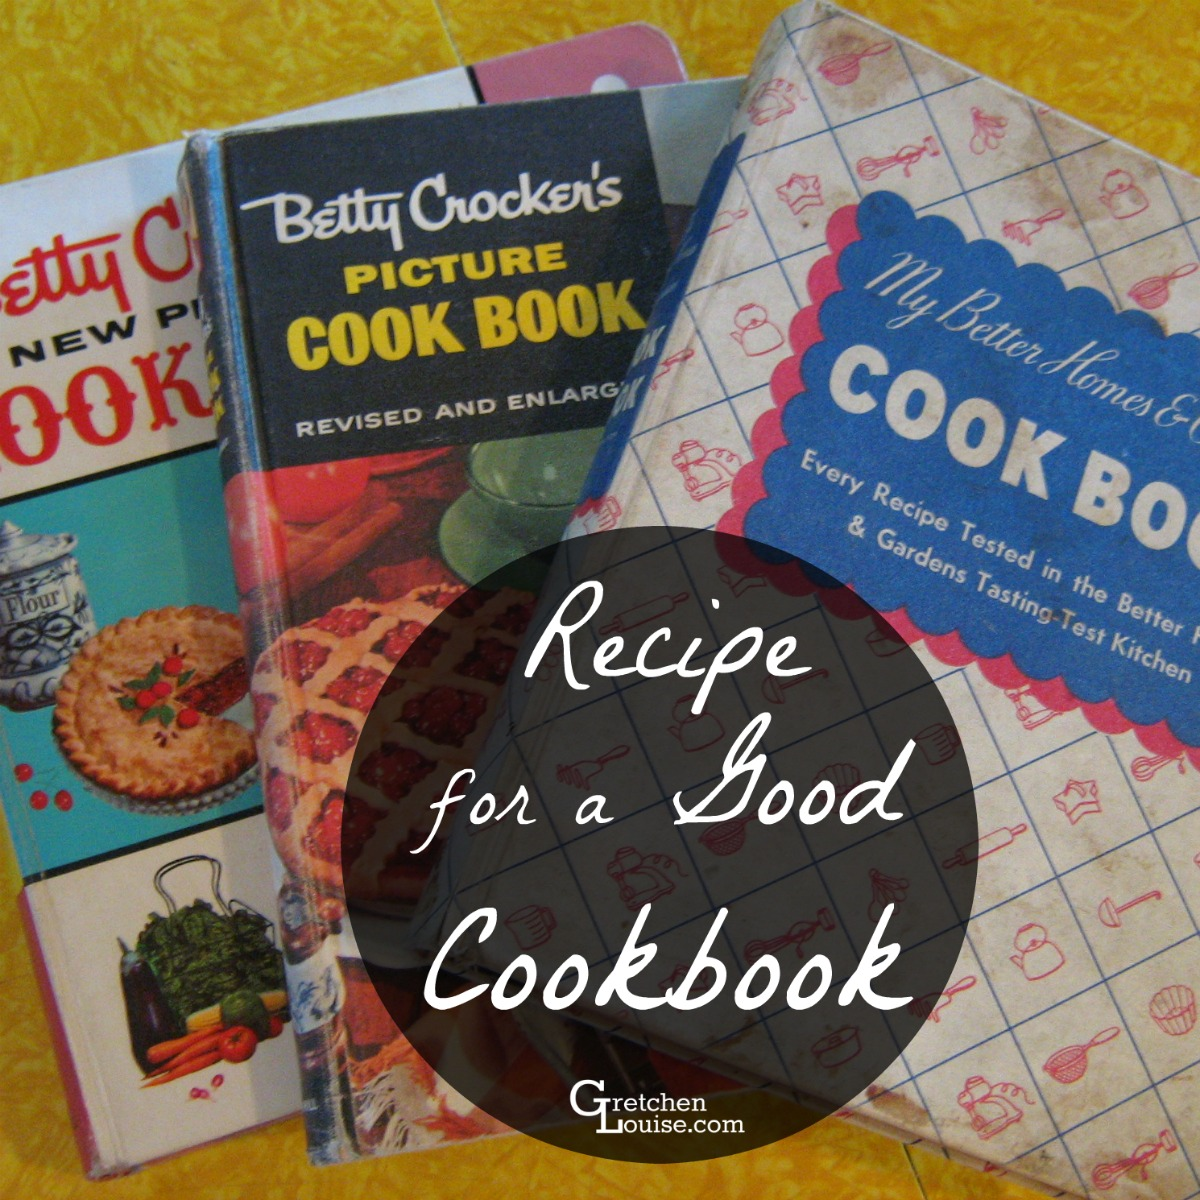 Recipe for a Good Cookbook